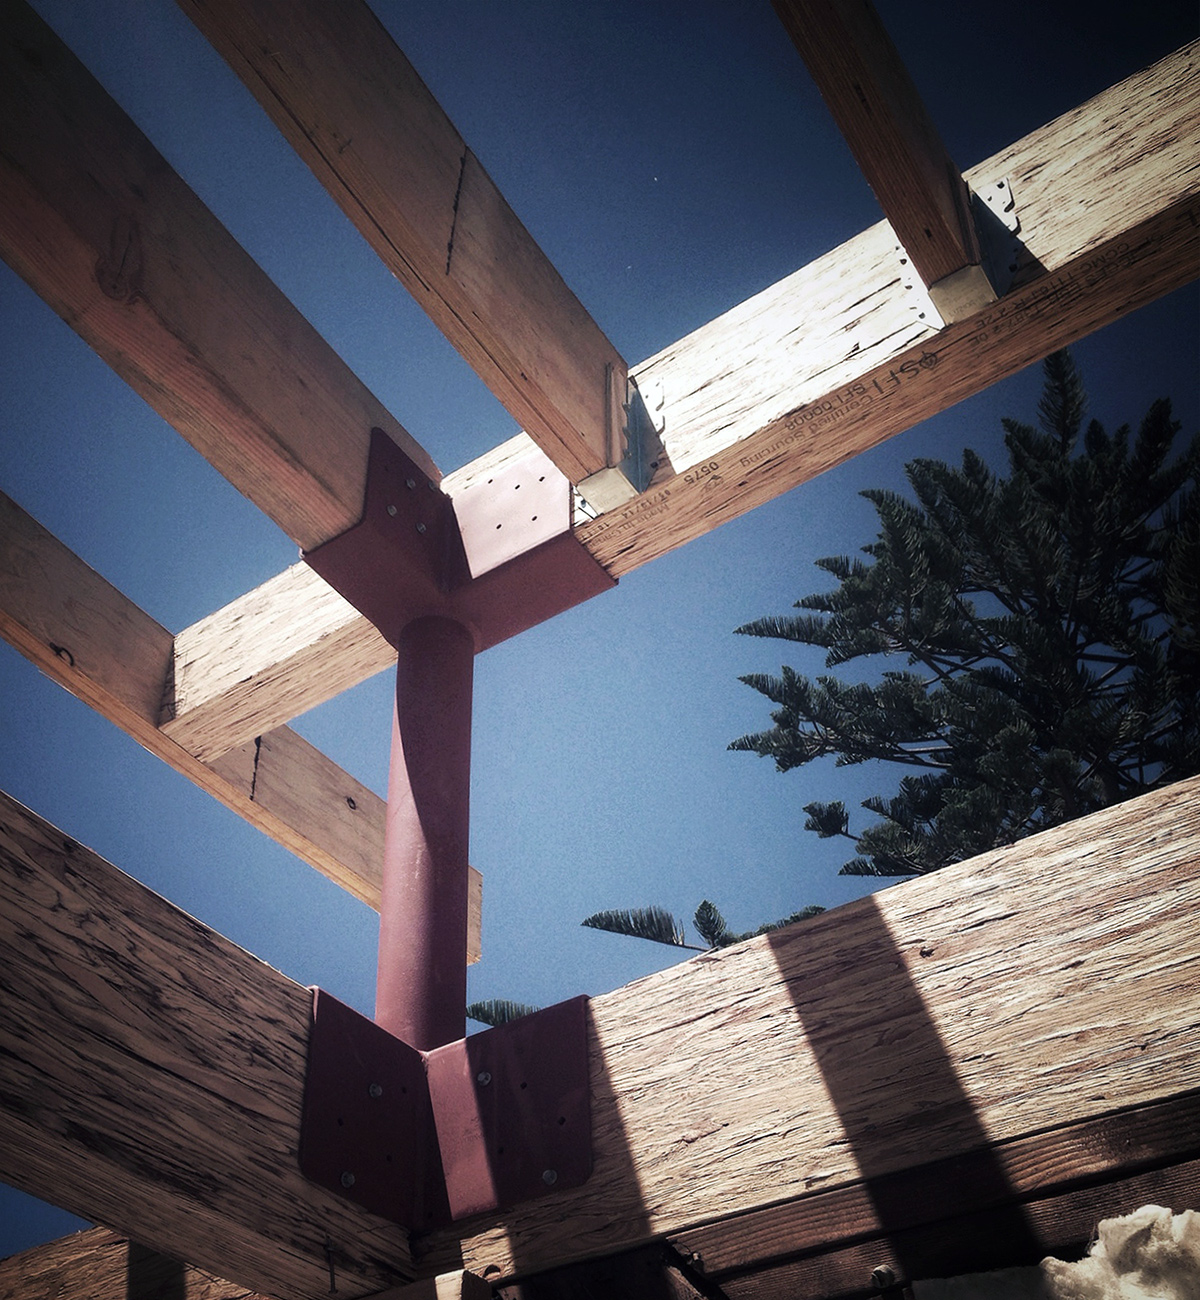 residential construction detail / steel post at clerestory windo